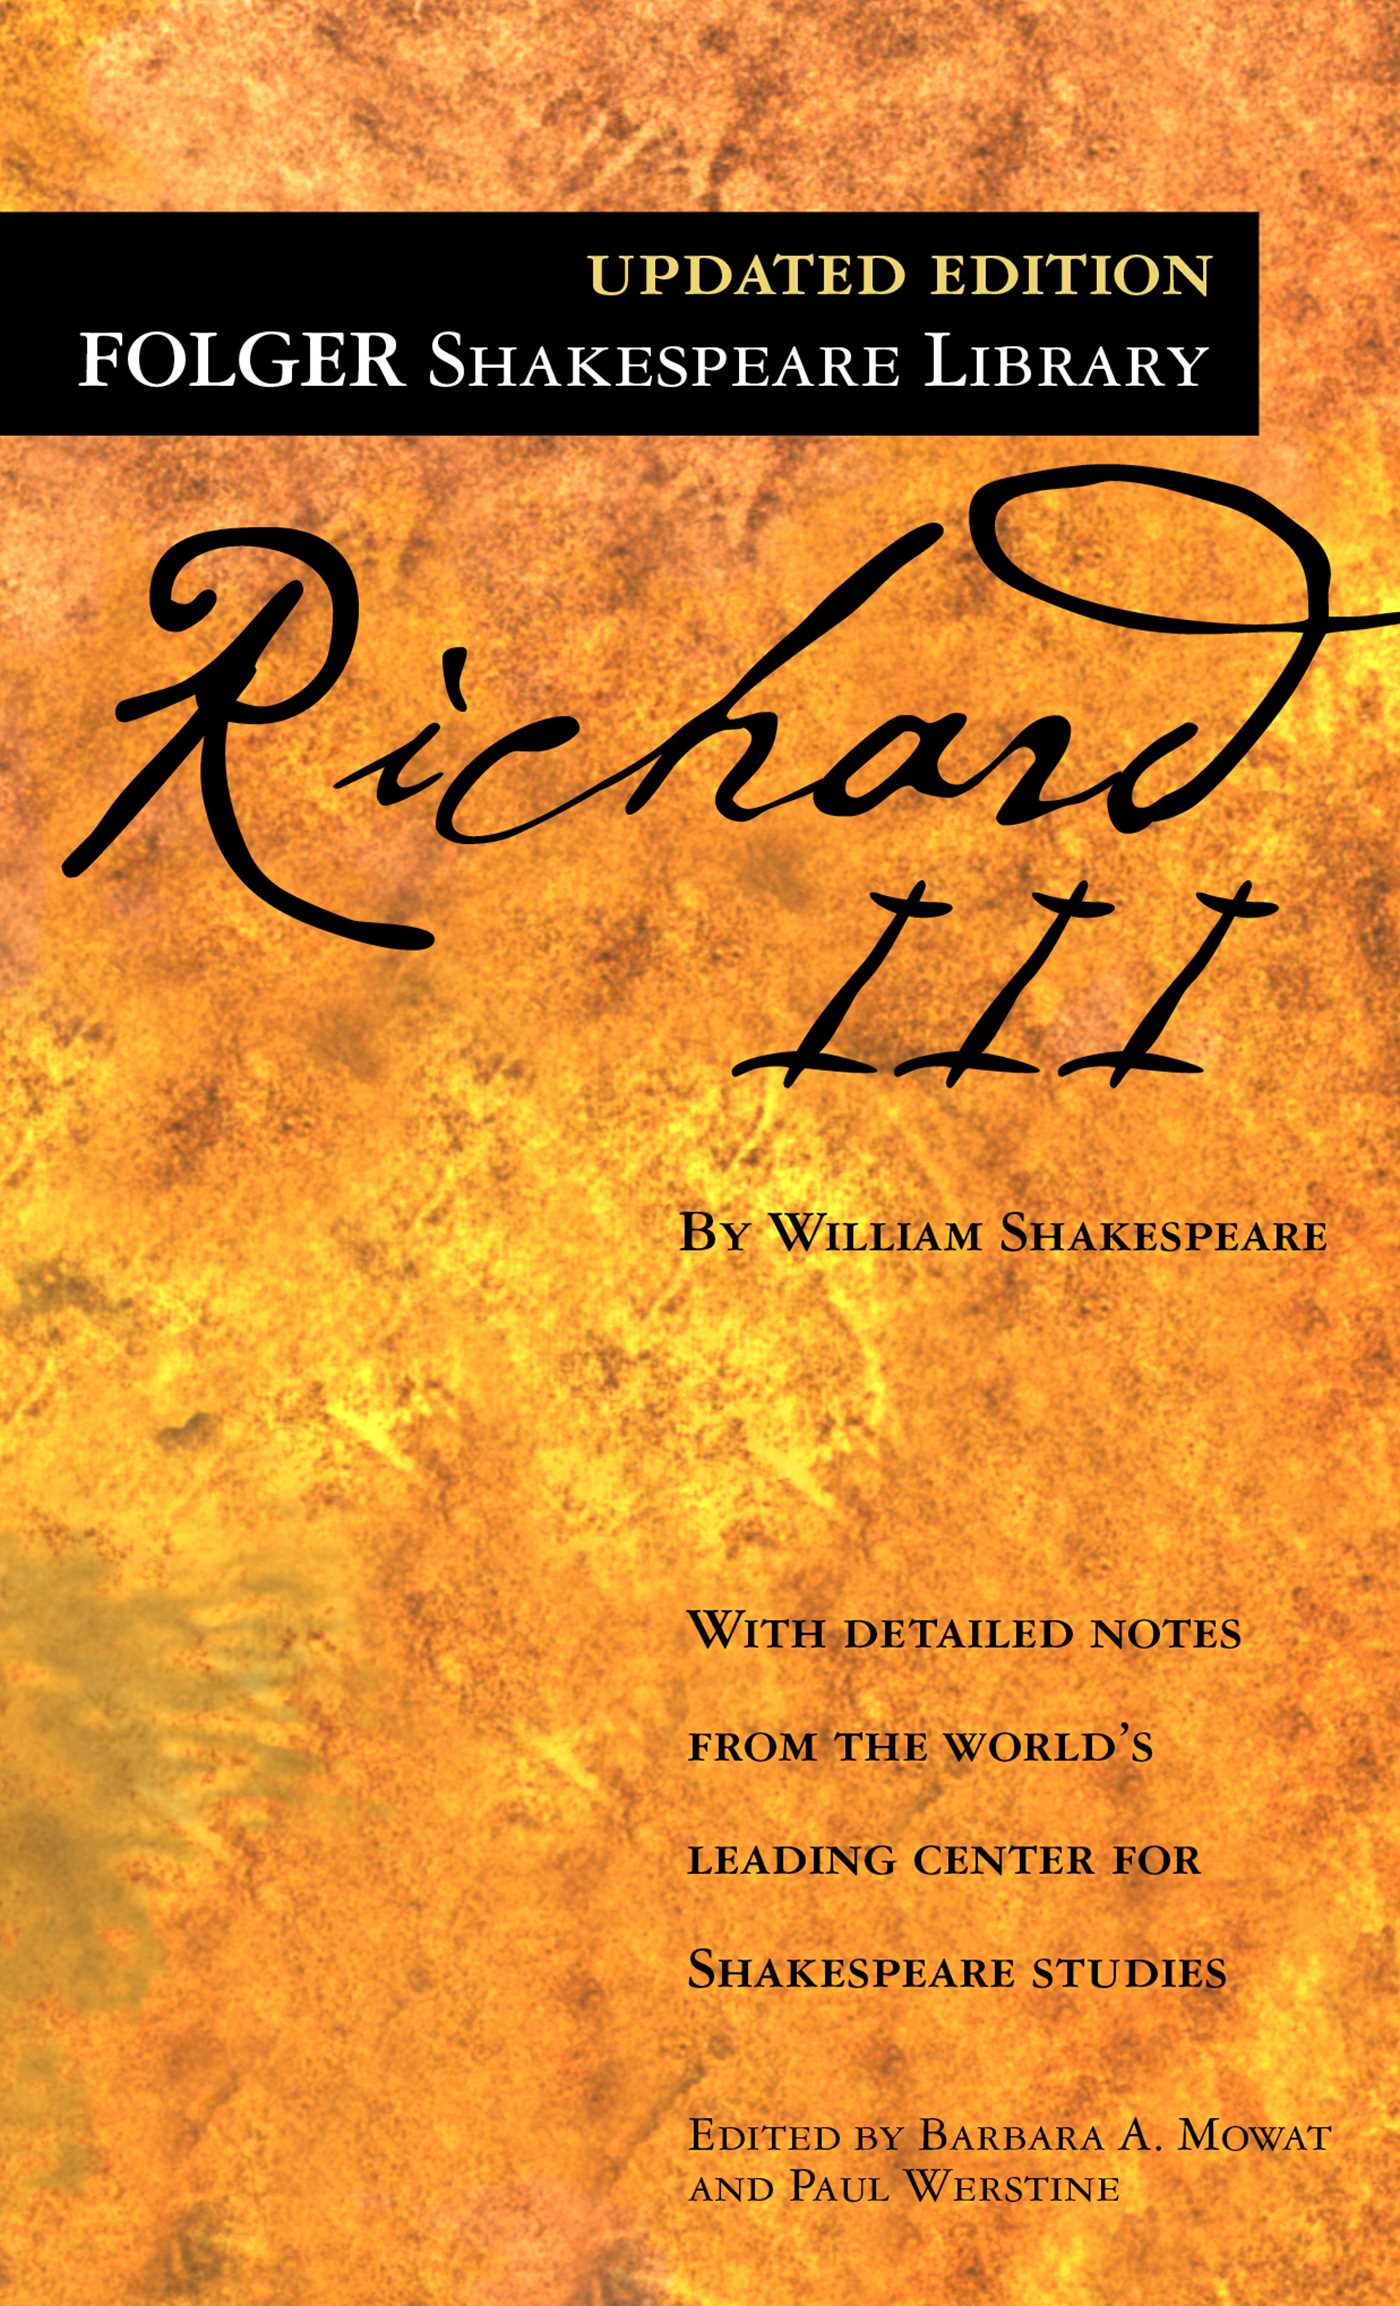 Richard iii 9780743482844 hr